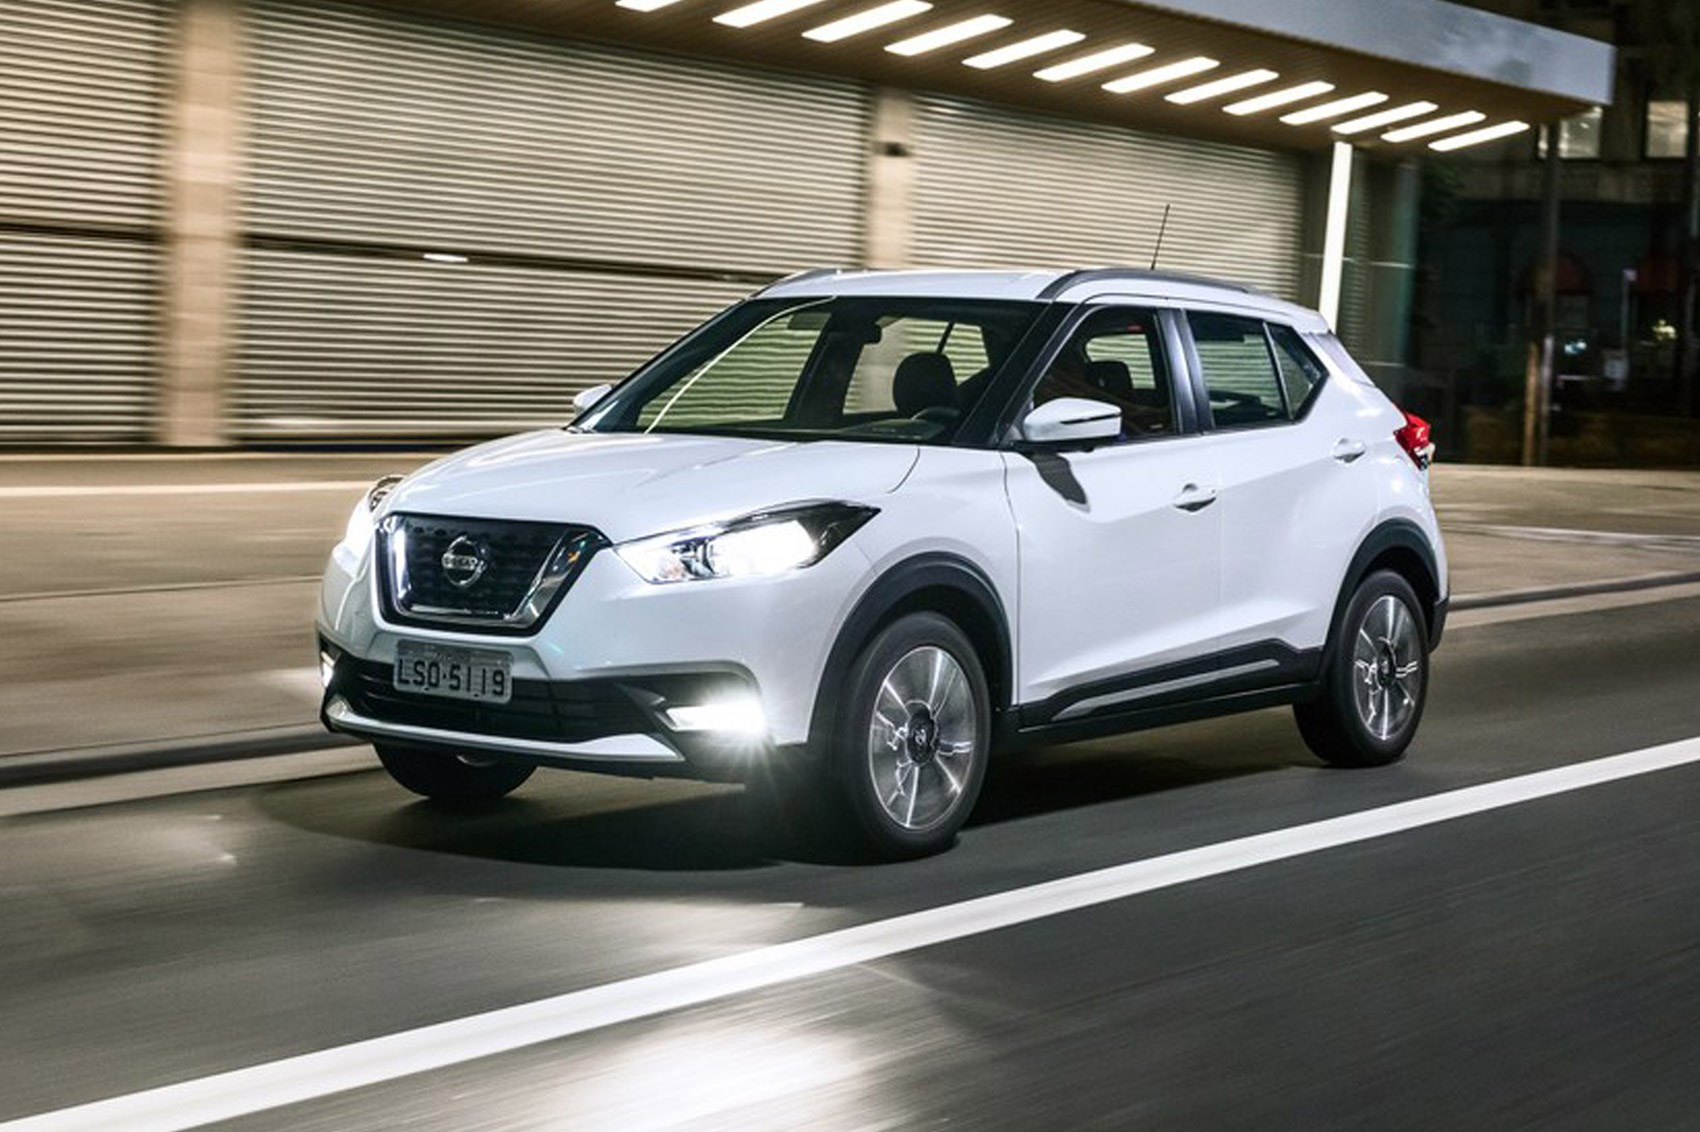 Nissan Kicks SL 1.6 16v (2016) review | CAR Magazine